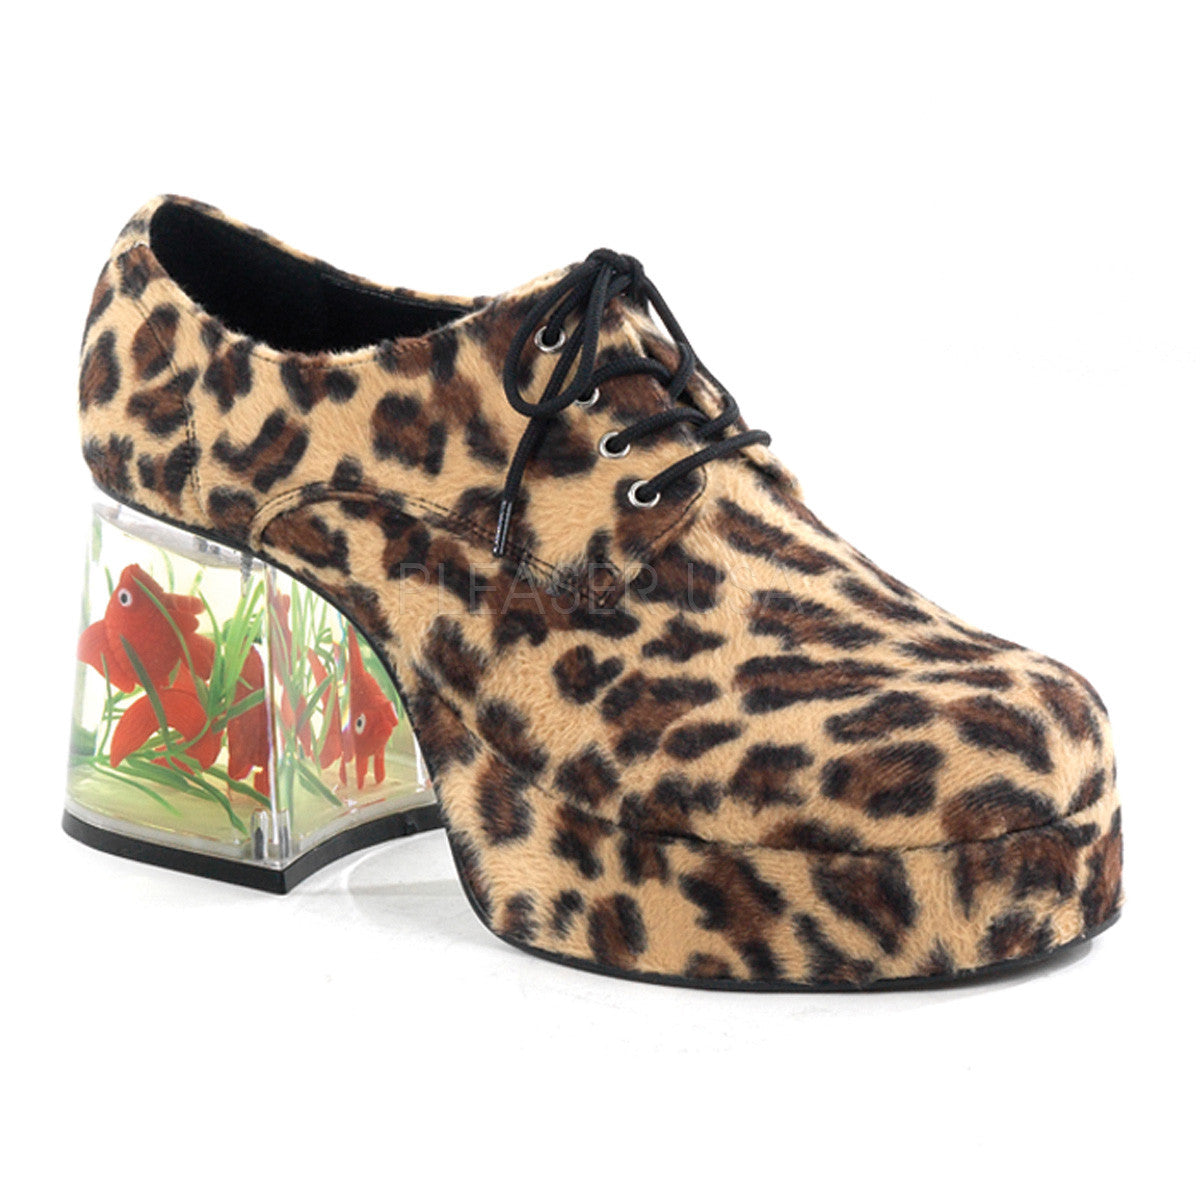 Image result for platform shoes with fish